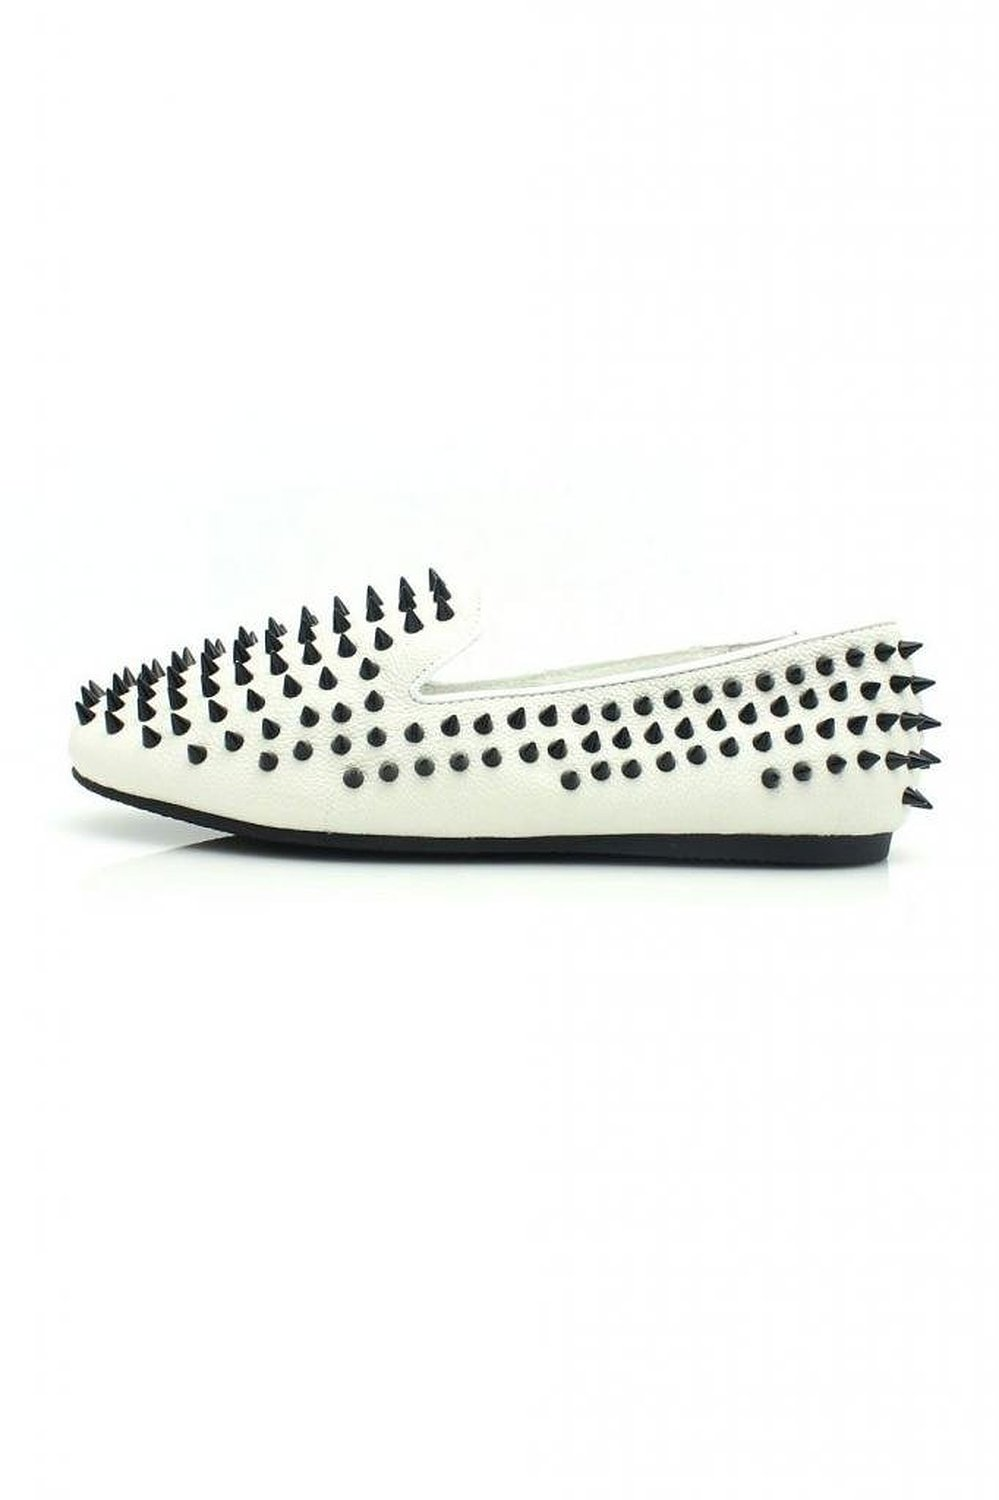 Amazon.com: unif womens hellraiser white leather black spikes loafers flats shoes 5: shoes